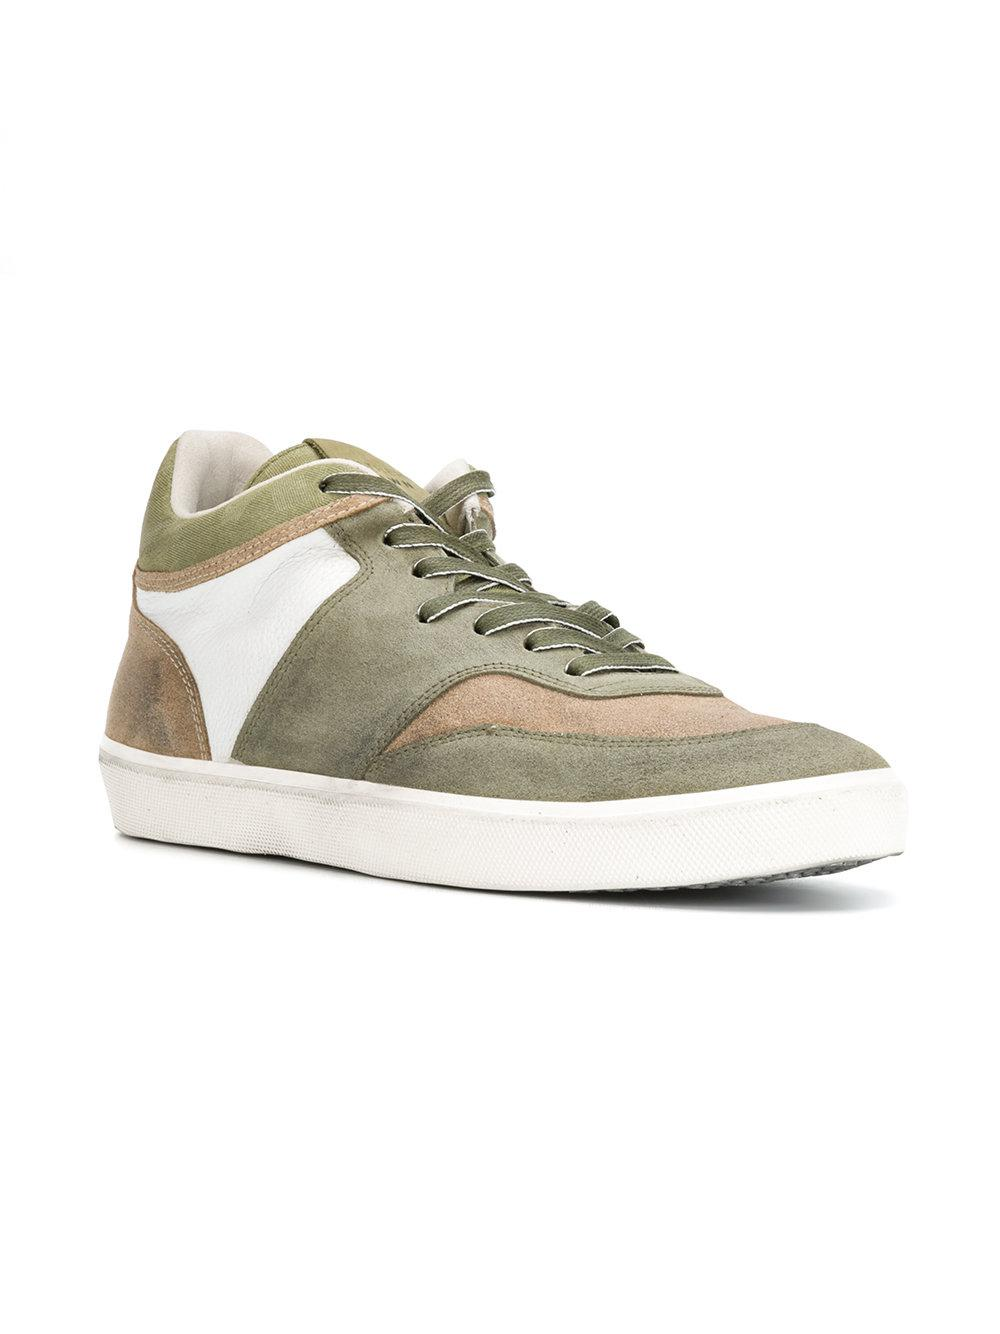 new concept 88dea 5bff5 leather-crown-Green-Mid-Top-Sneakers.jpeg